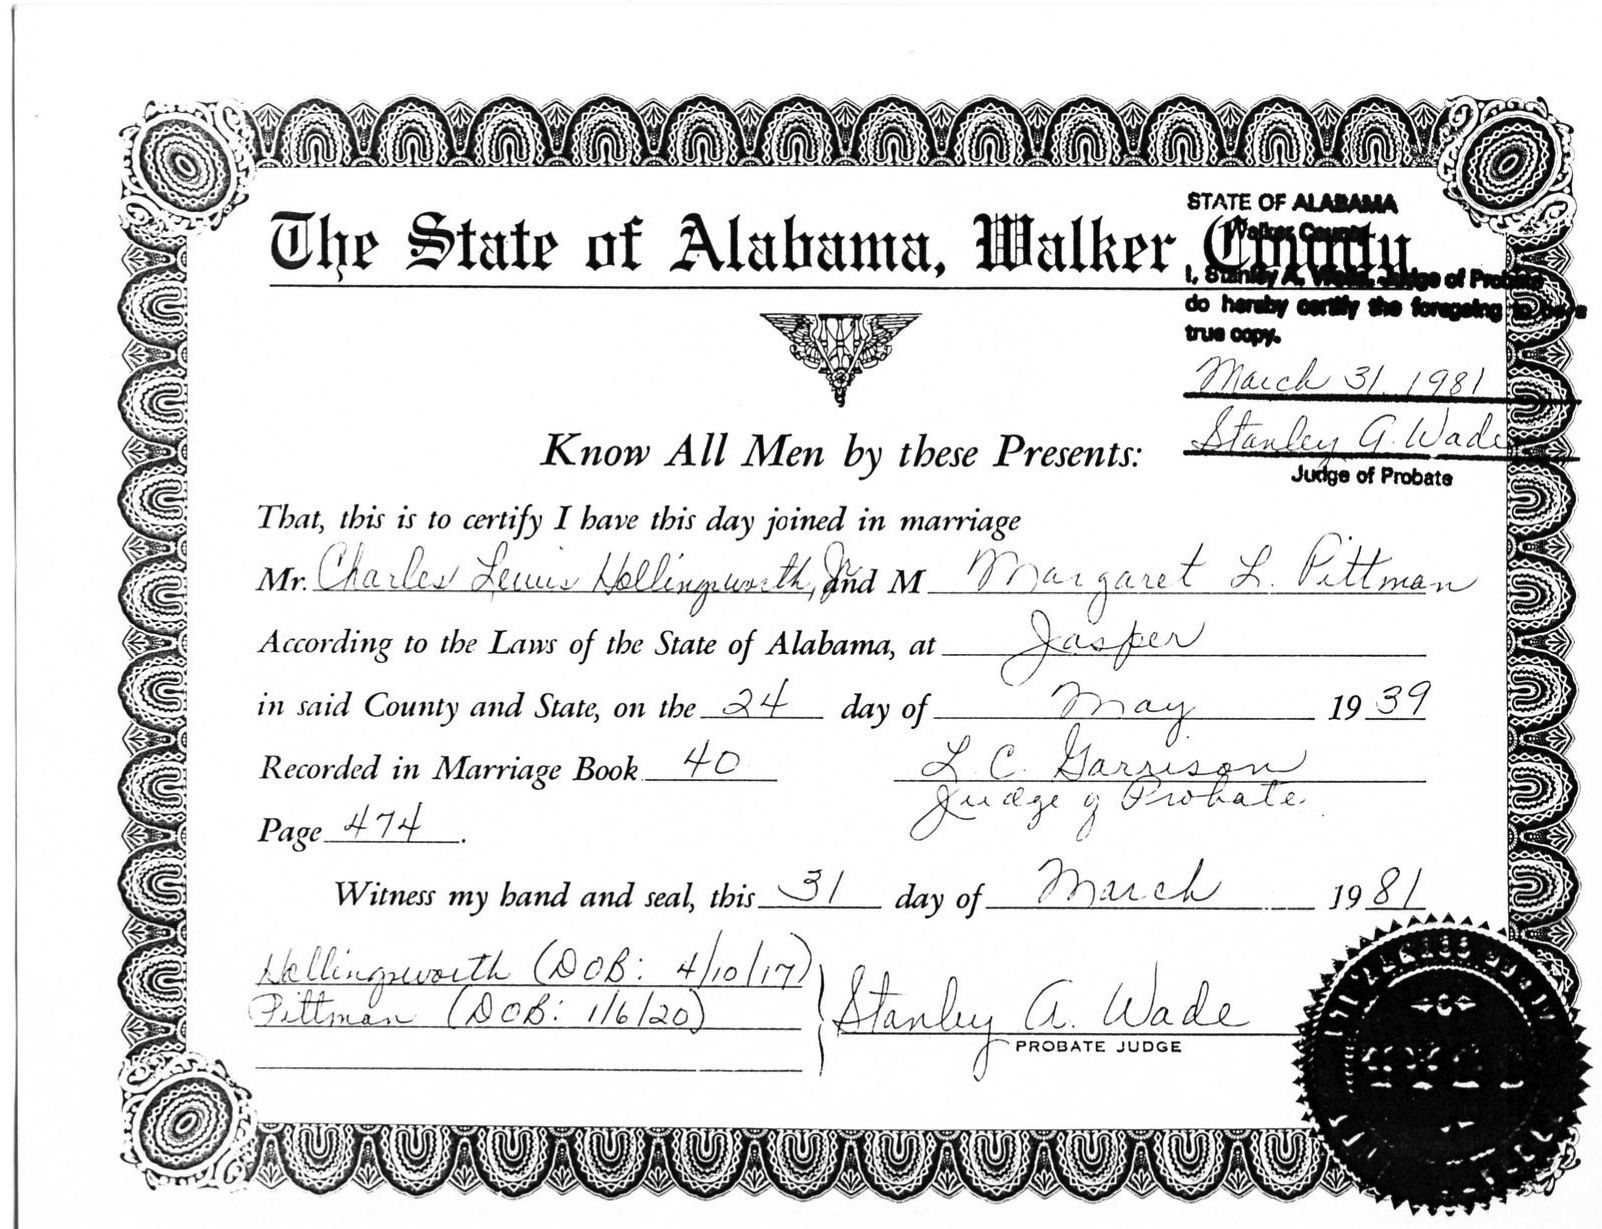 Marriage certificate license for charles lewis hollingsworth jr marriage certificate license for charles lewis hollingsworth jr charles louis hollingsworth xflitez Images